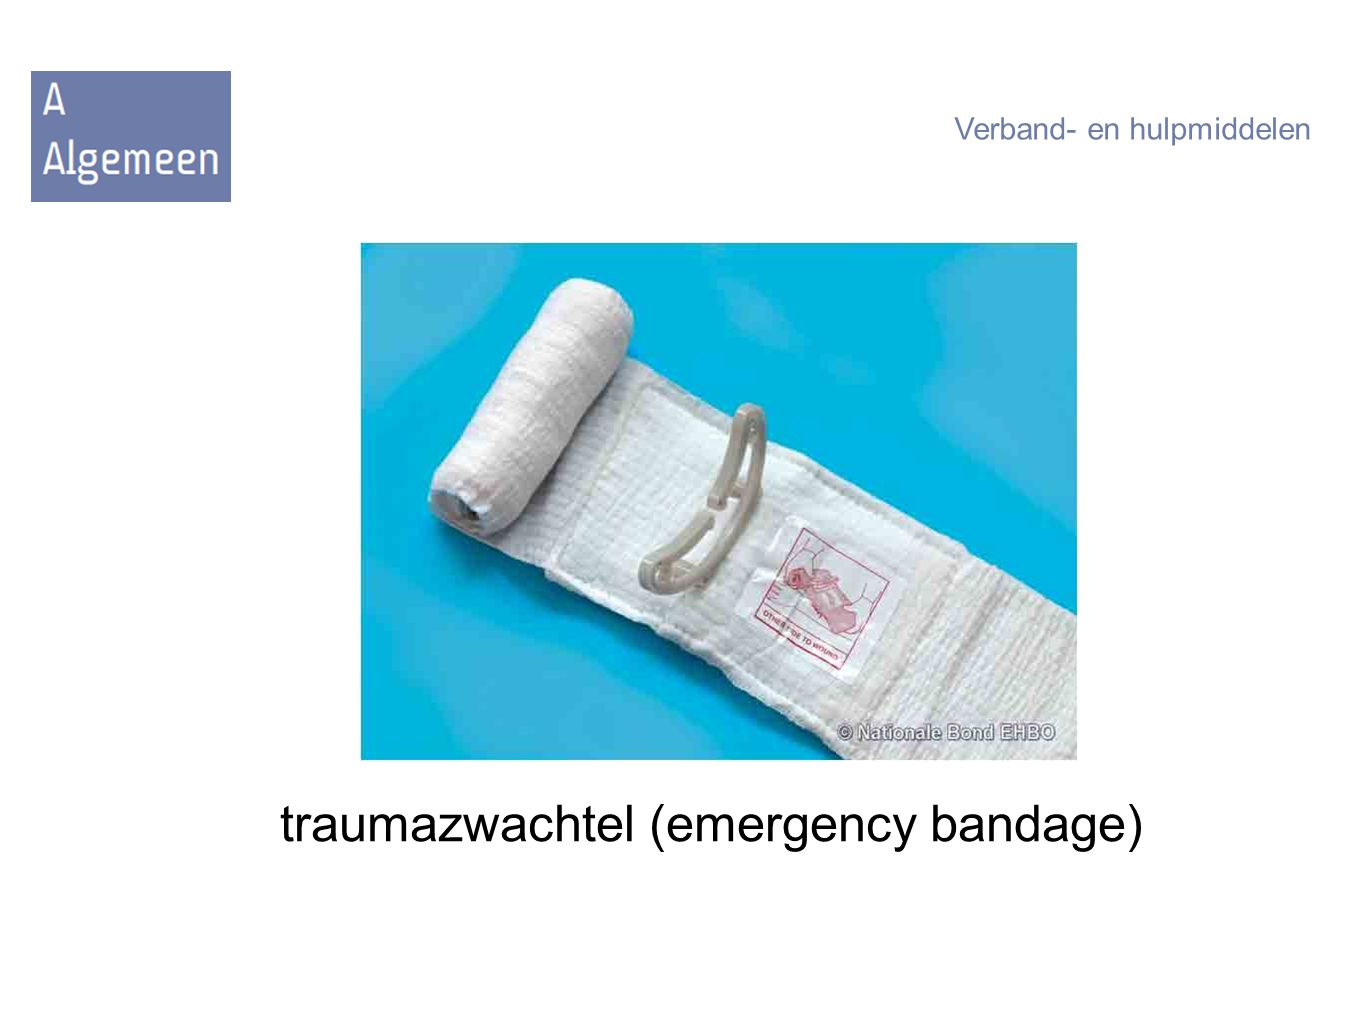 traumazwachtel (emergency bandage)